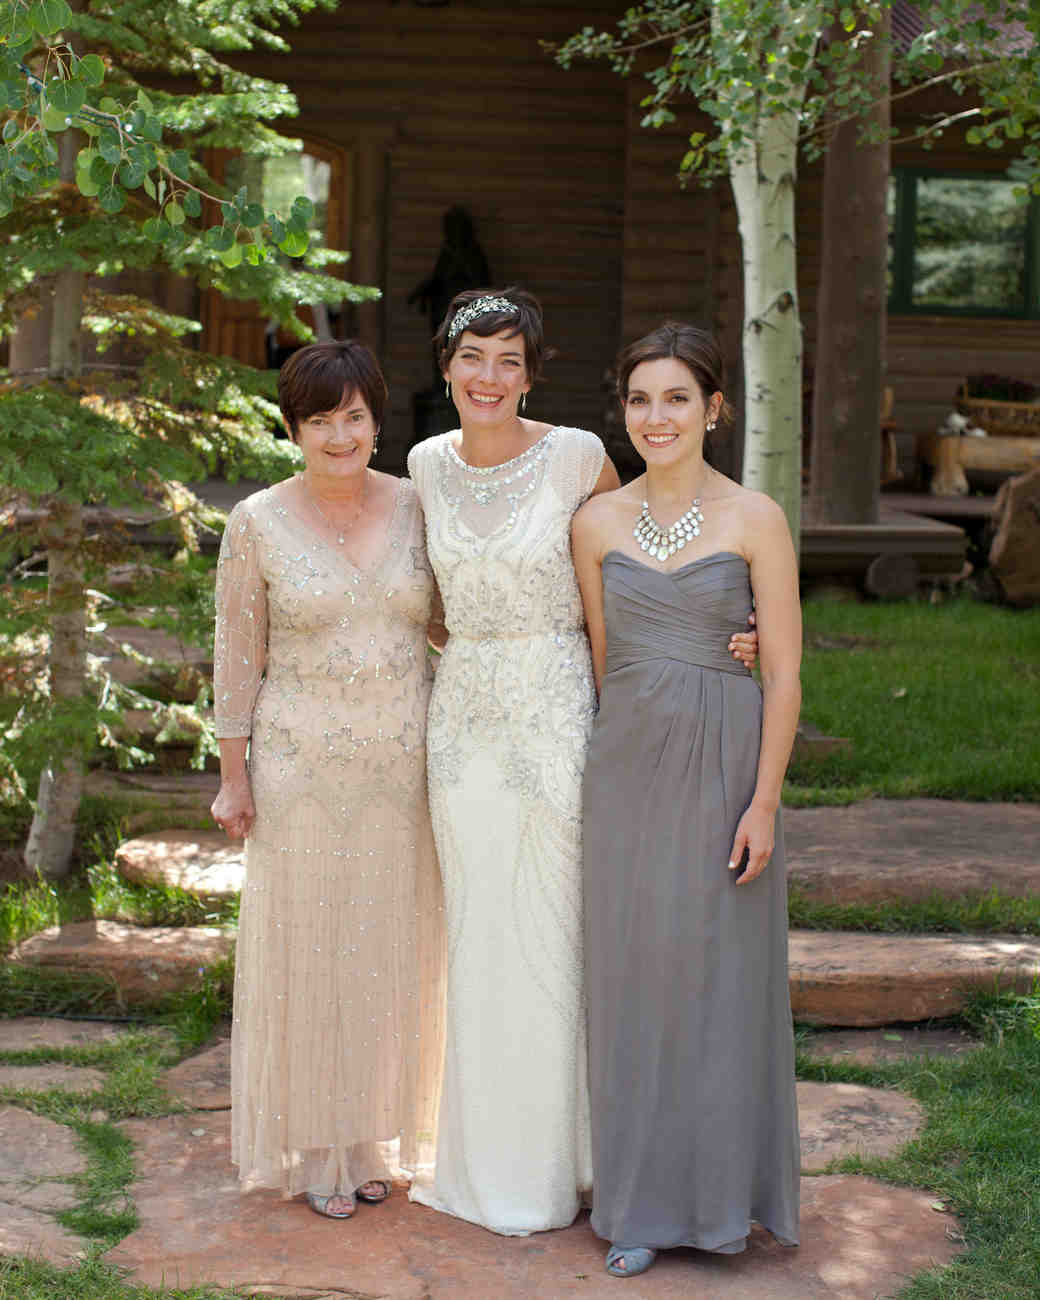 Rustic Wedding Mother Of The Groom Dresses 51 Off Naonsite Com,Pastel Pink Dress For Wedding Guest